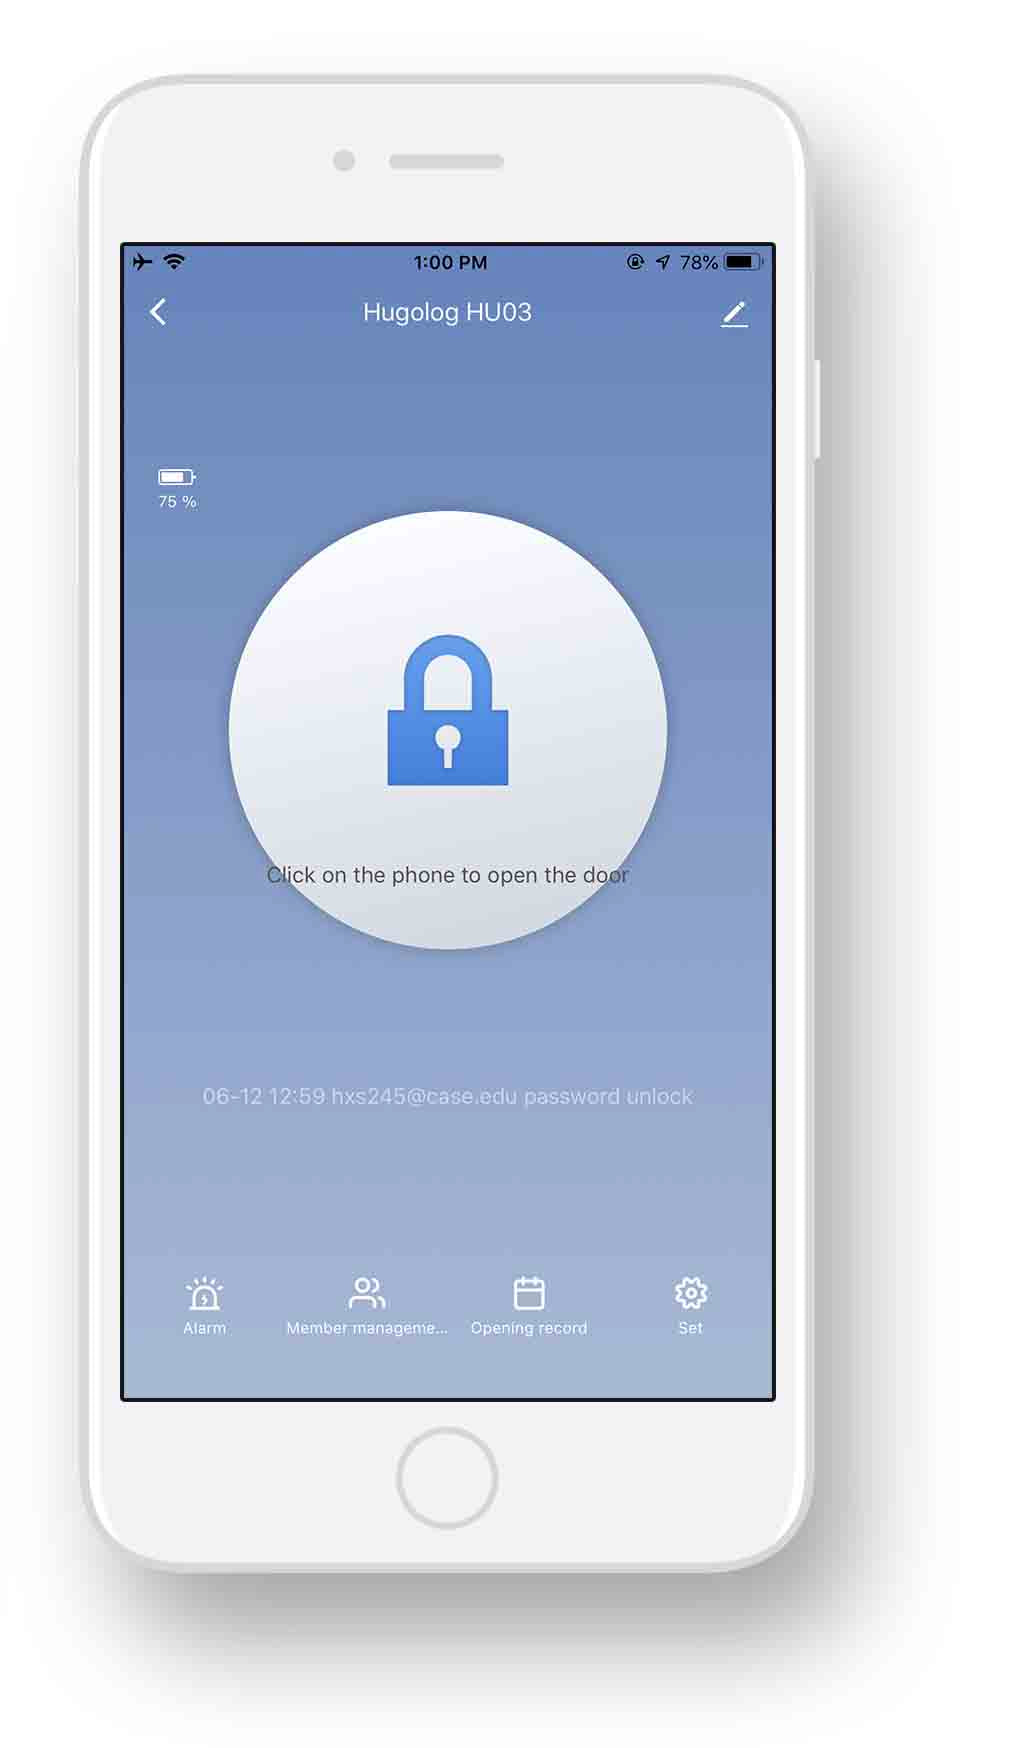 remote-unlock-app-screen